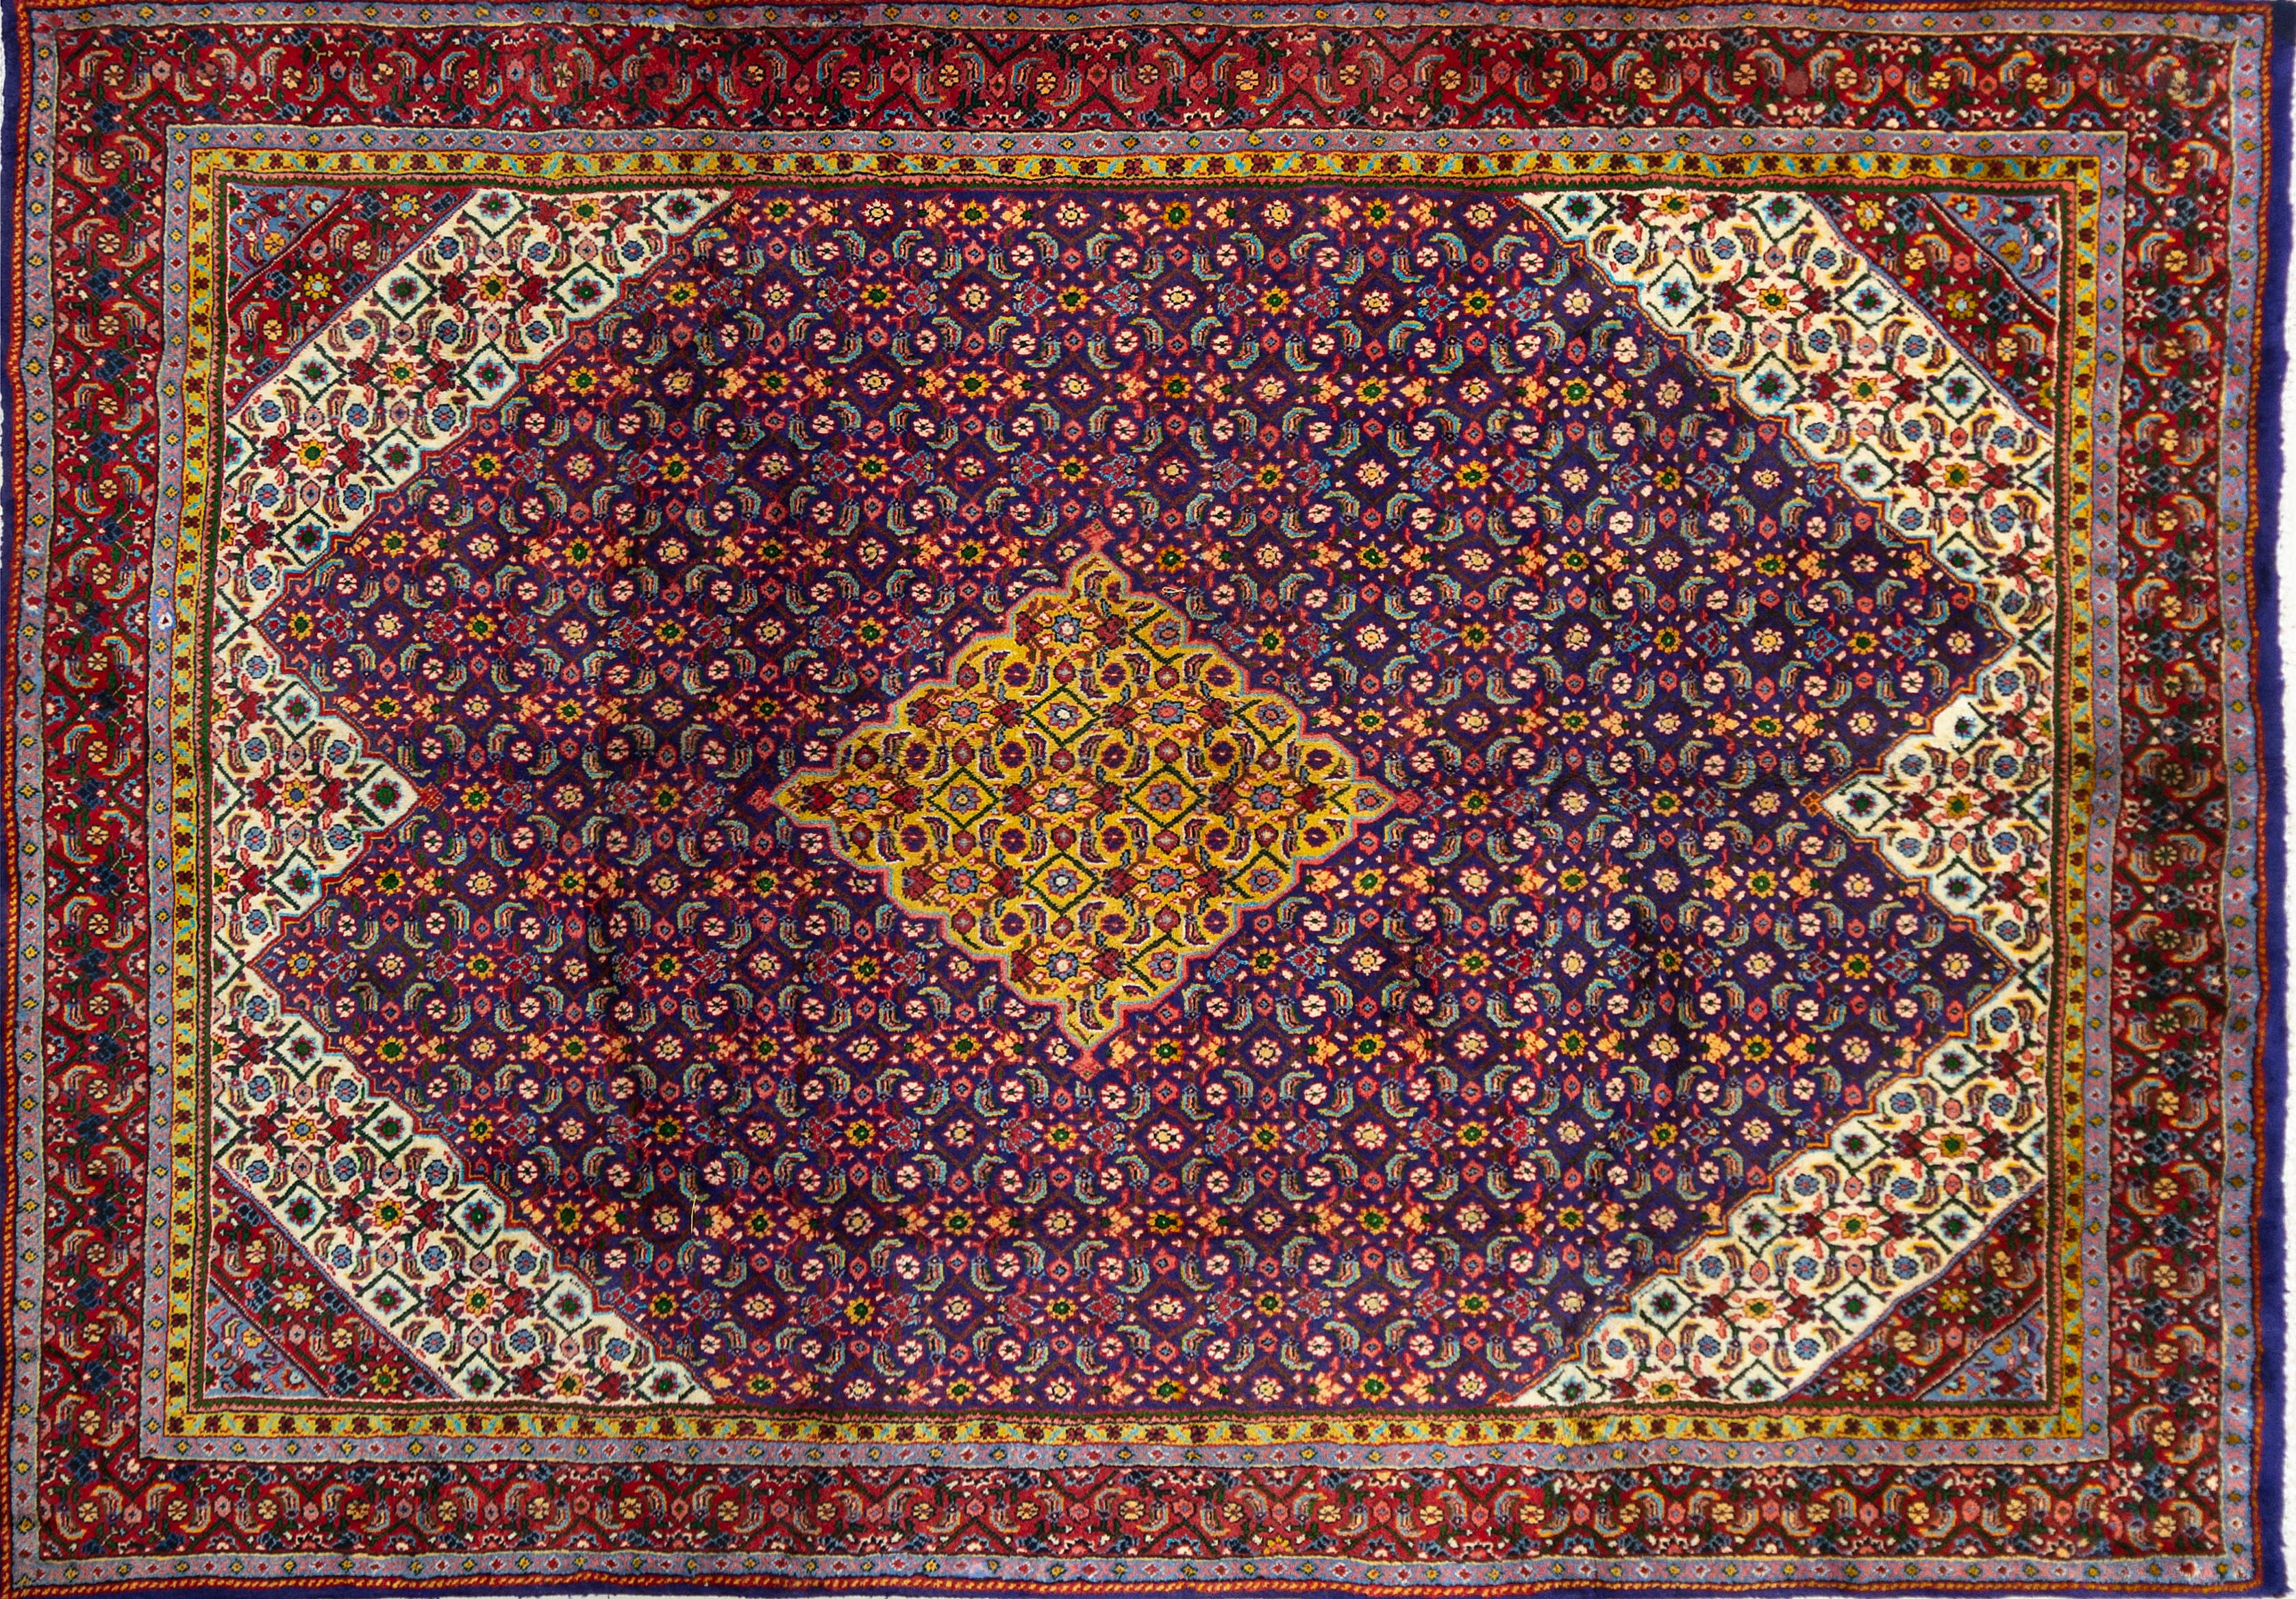 A Persian Hand Knotted Mahal Carpet, 305 x 212